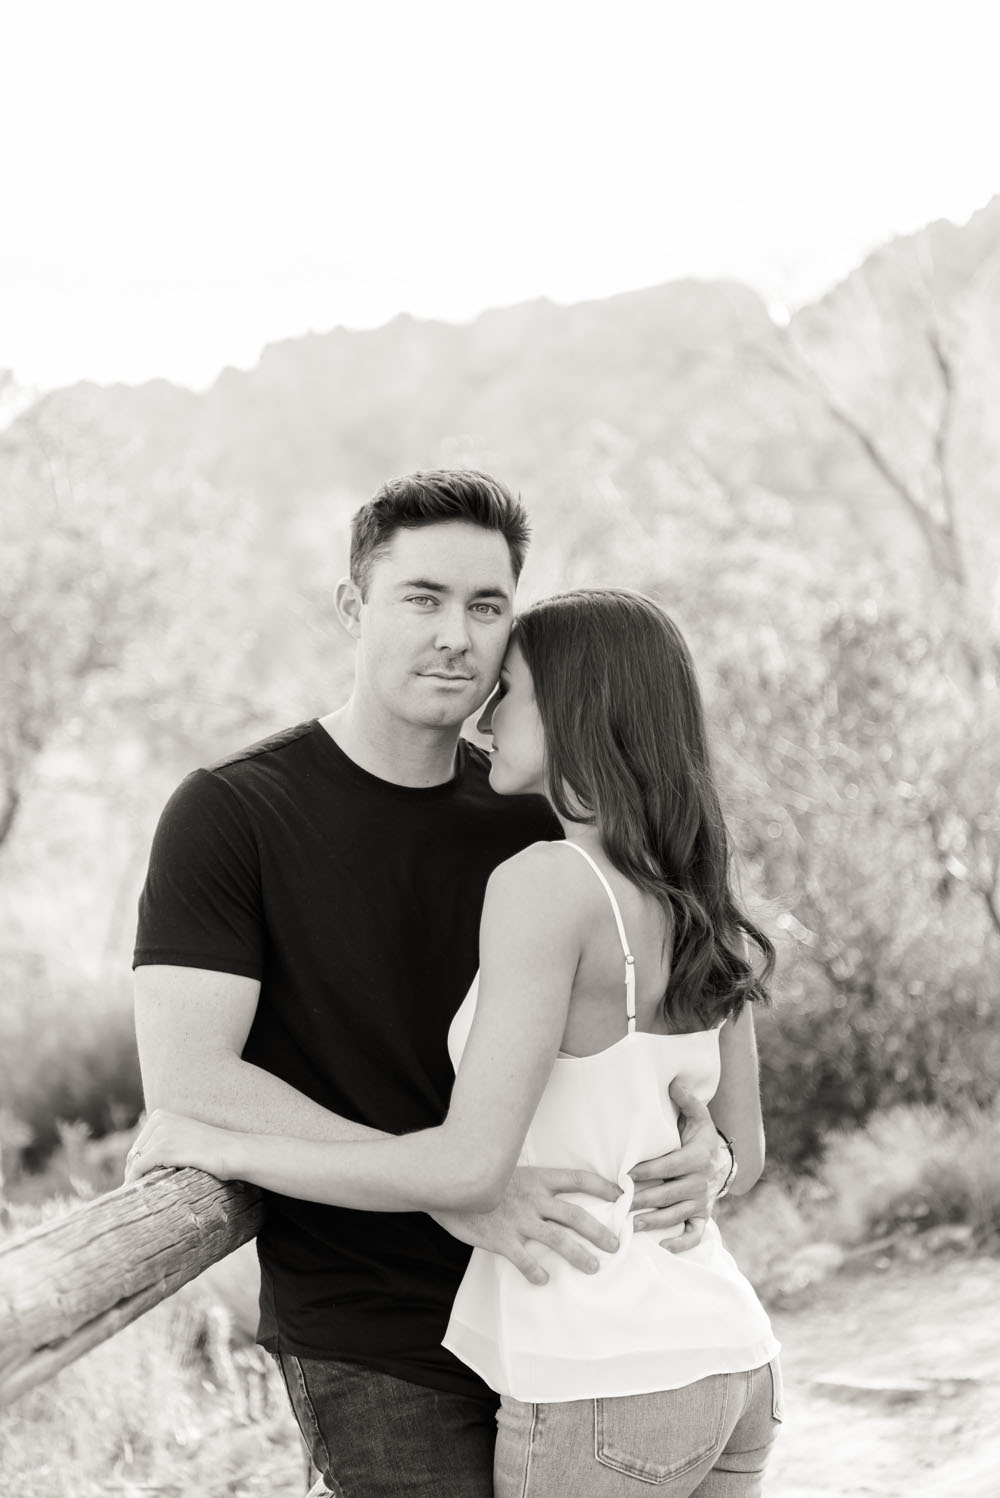 Spring Mountain Ranch Engagement Session | Kristen Marie Weddings + Portraits